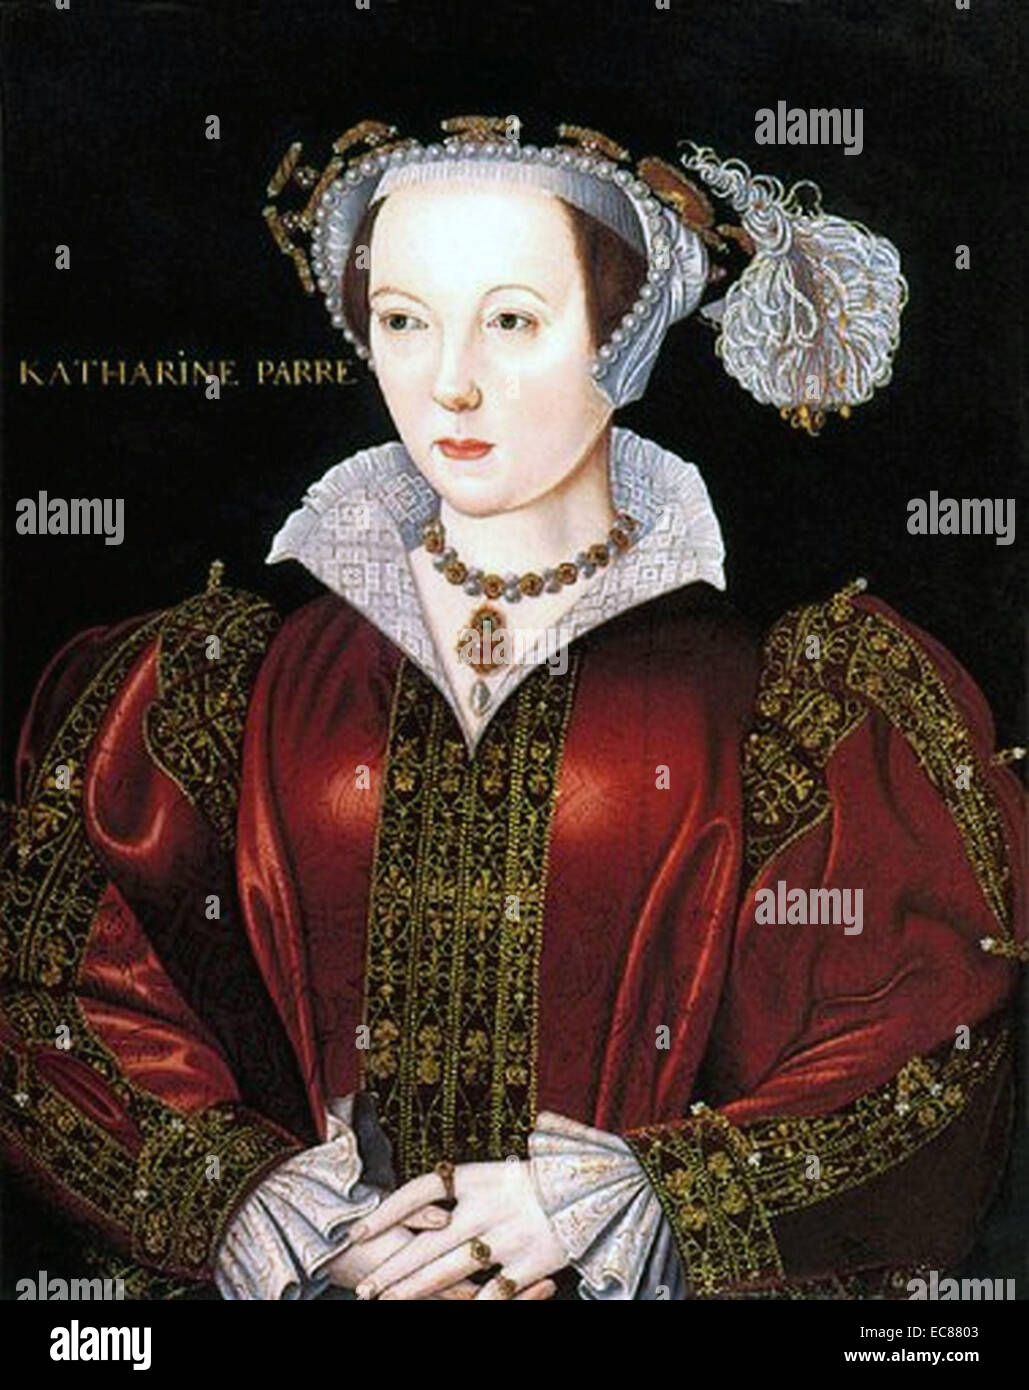 Portrait of Catherine Parr (1512-1548) Queen of England and last of the wives of King Henry VIII. Dated 16th Century - Stock Image